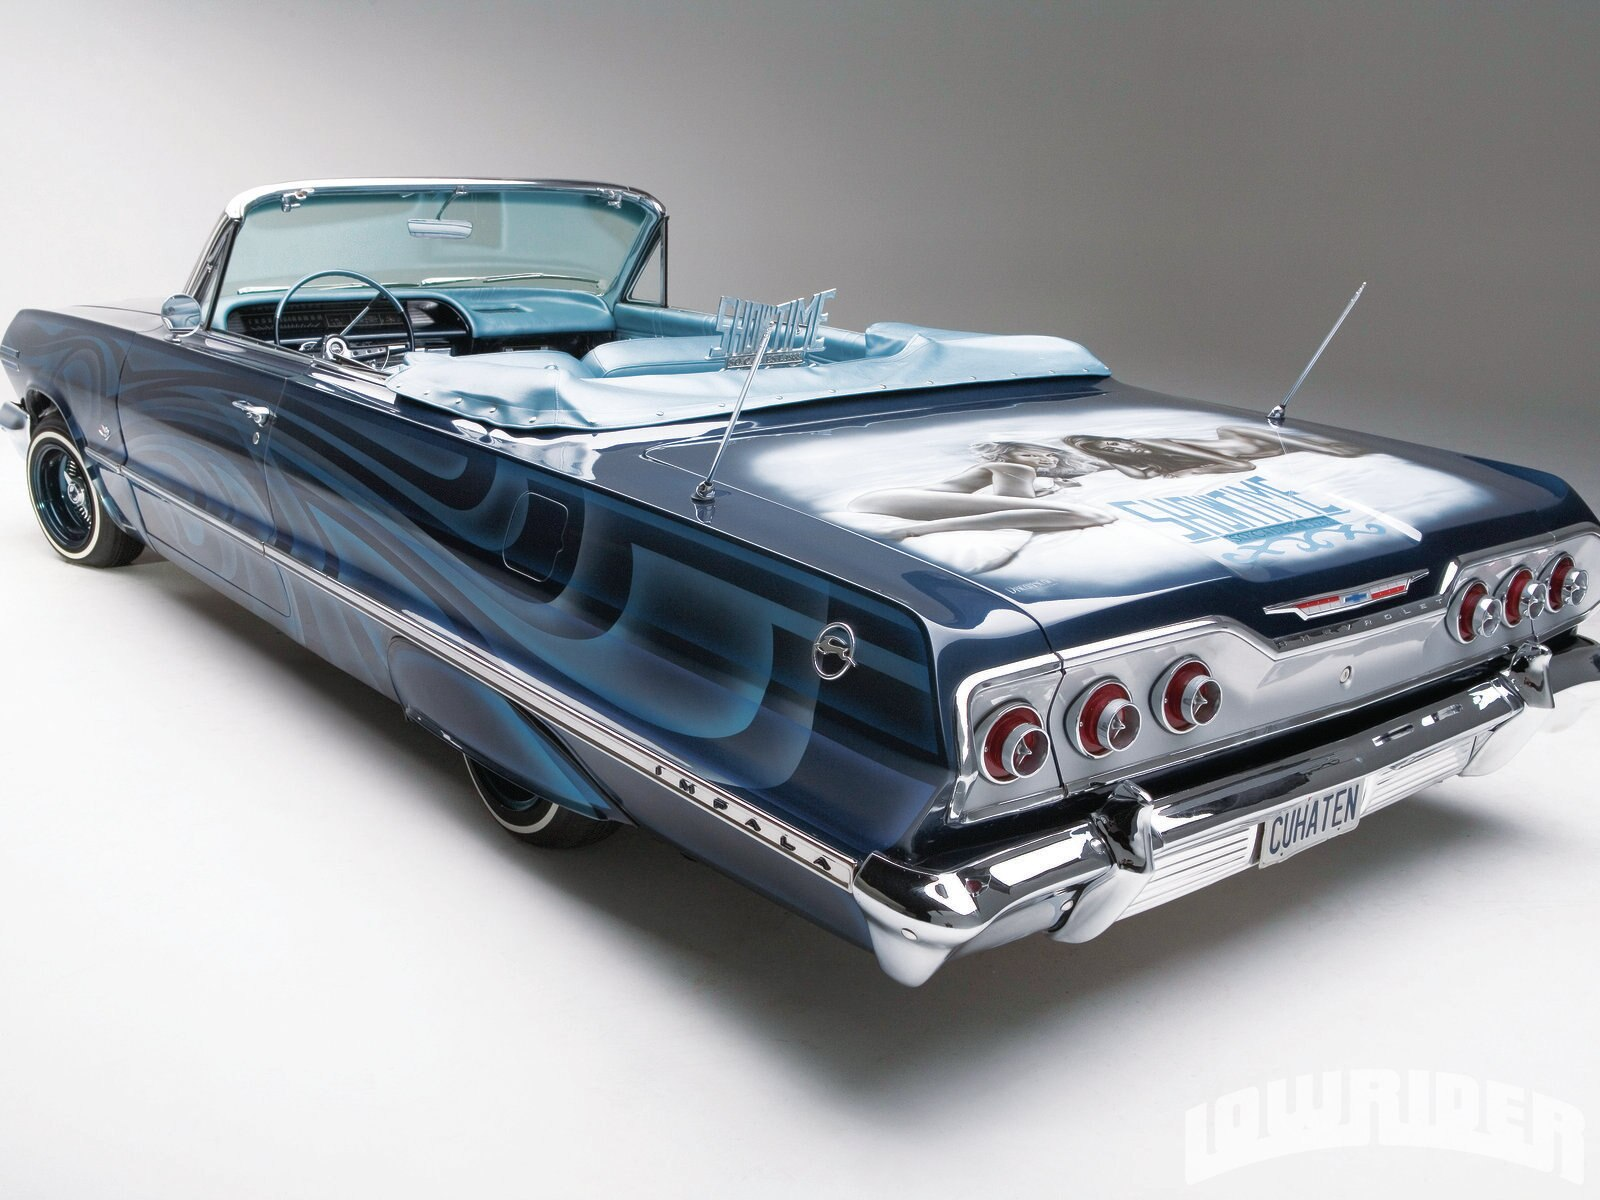 lrmp_1107_01_z-1963_impala_convertible-rear_view3